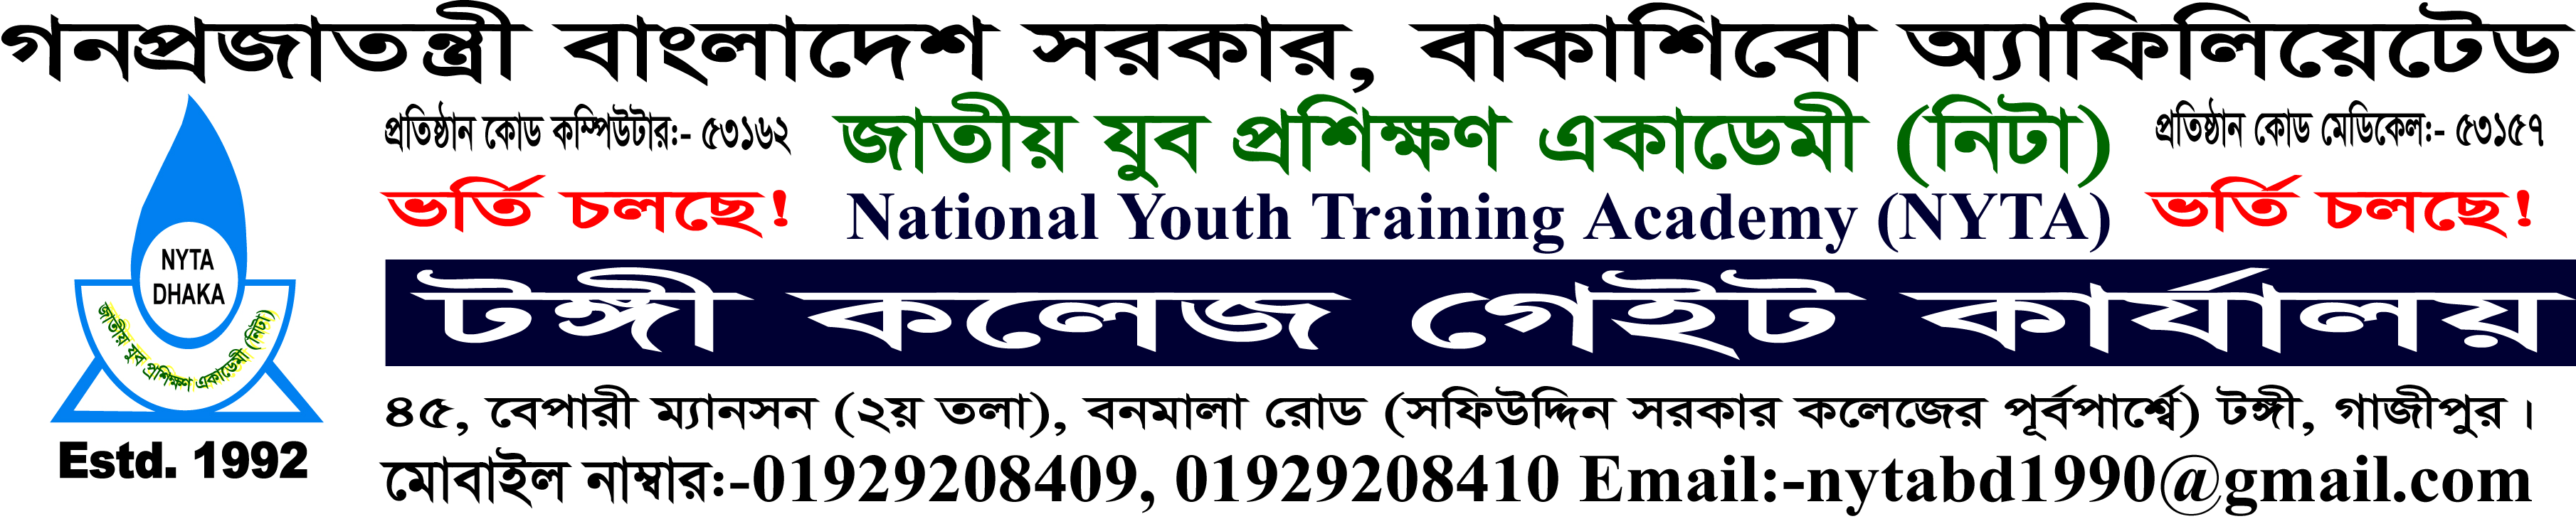 National Youth Training Academy